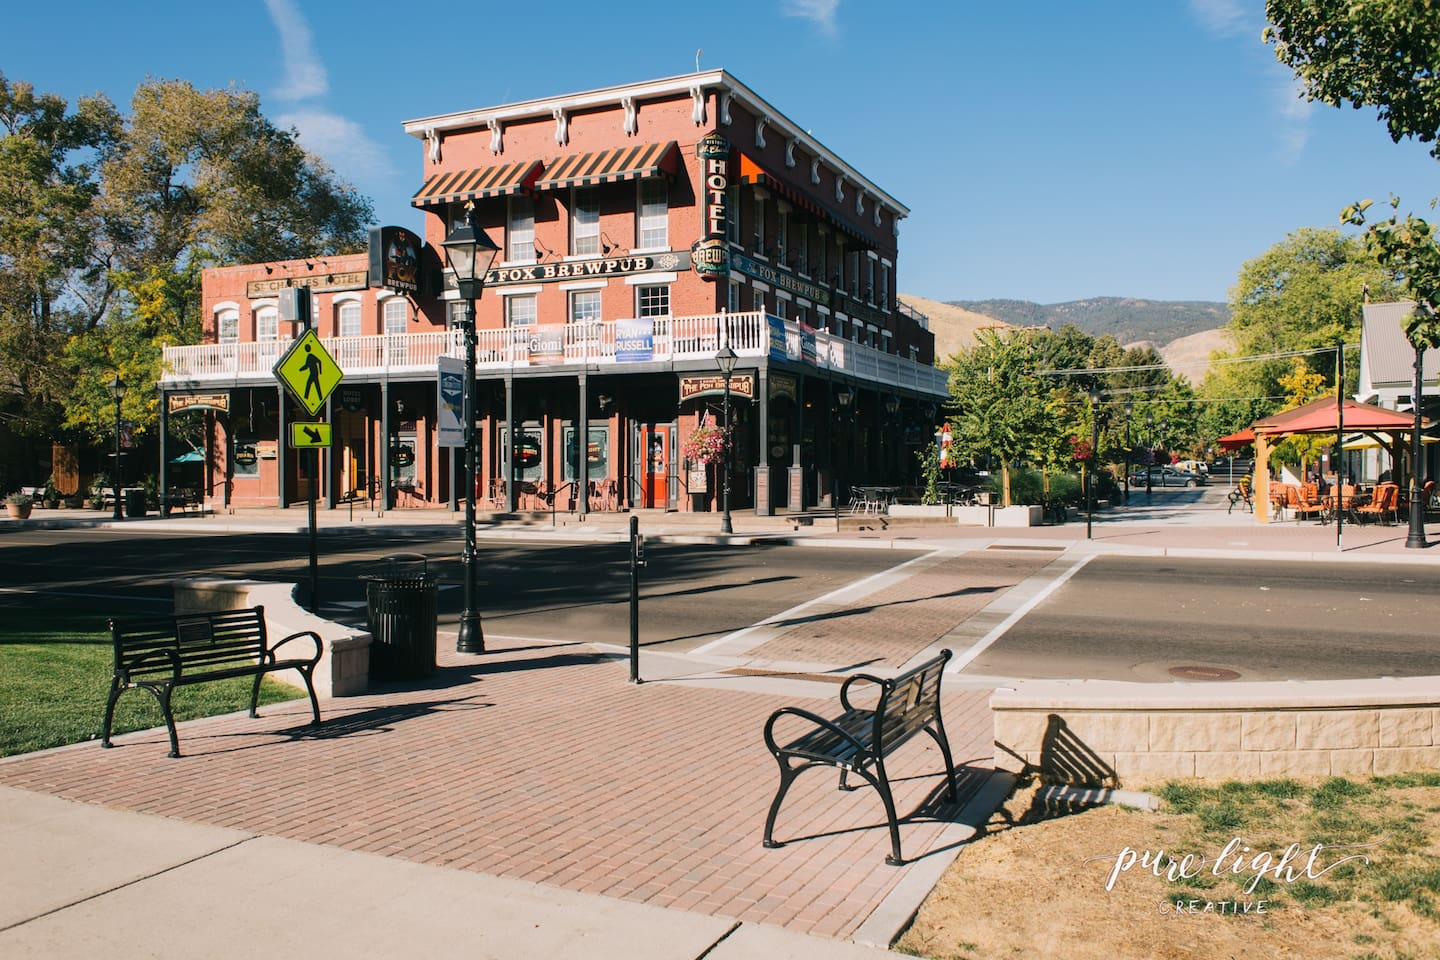 St Charles Hotel built in 1862, downtown Carson City across from State Capitol.  Rooms are located on 2nd floor, access to balcony and large back deck.  Room 205 is located on the SE corner (the left side of photo, 2nd floor.